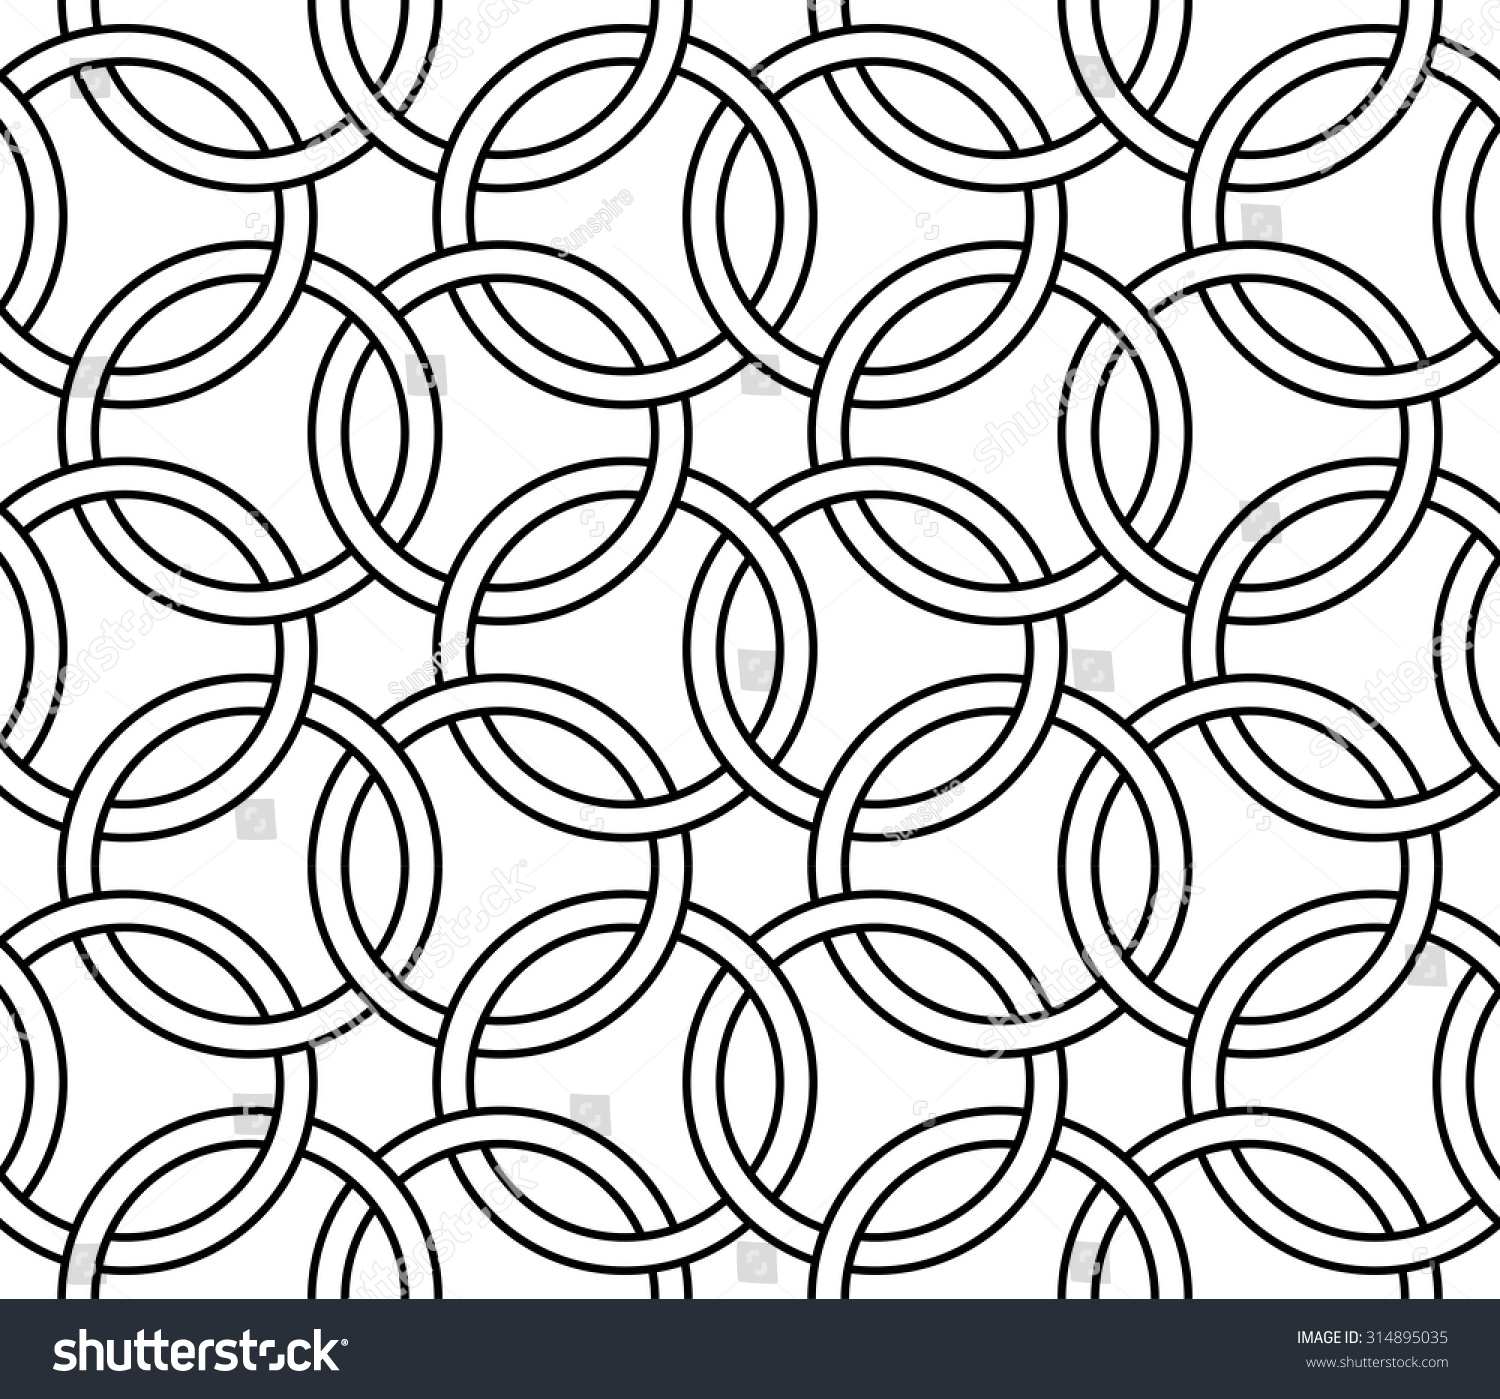 Black bed sheet texture seamless - Vector Modern Seamless Pattern Geometry Circles Black And White Textile Print Stylish Background